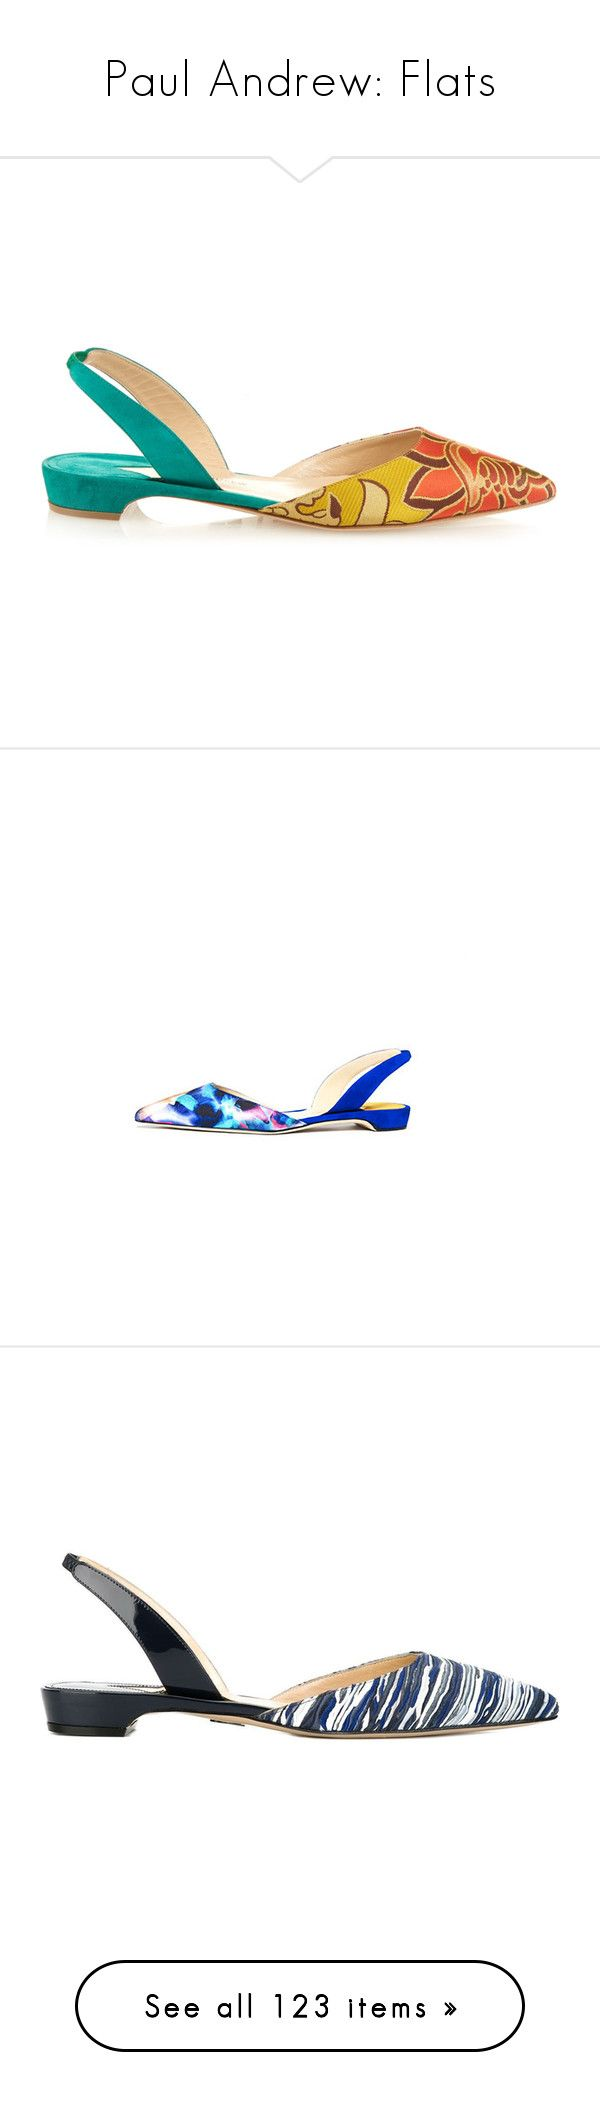 """Paul Andrew: Flats"" by livnd ❤ liked on Polyvore featuring flats, paulandrew, livndshoes, livndpaulandrew, shoes, sandals, flat pumps, evening flats, slingback sandals and pointed-toe flats"